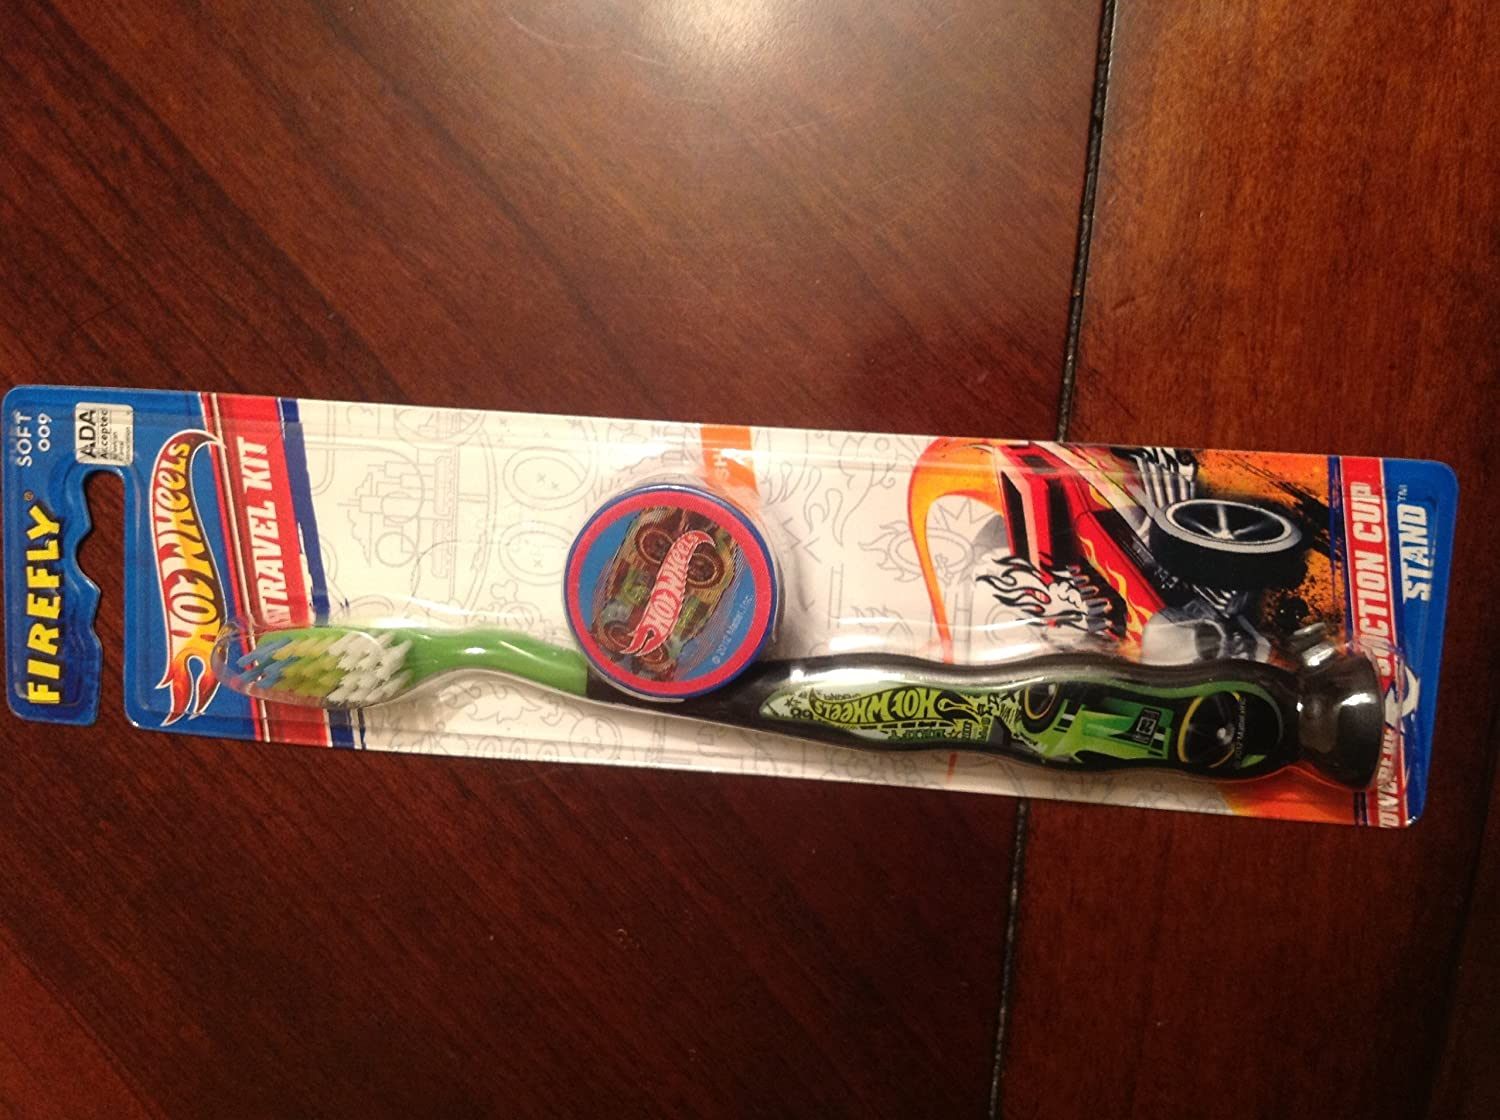 Firefly Hot Wheels Soft Toothbrush with Suction Cup Travel Kit